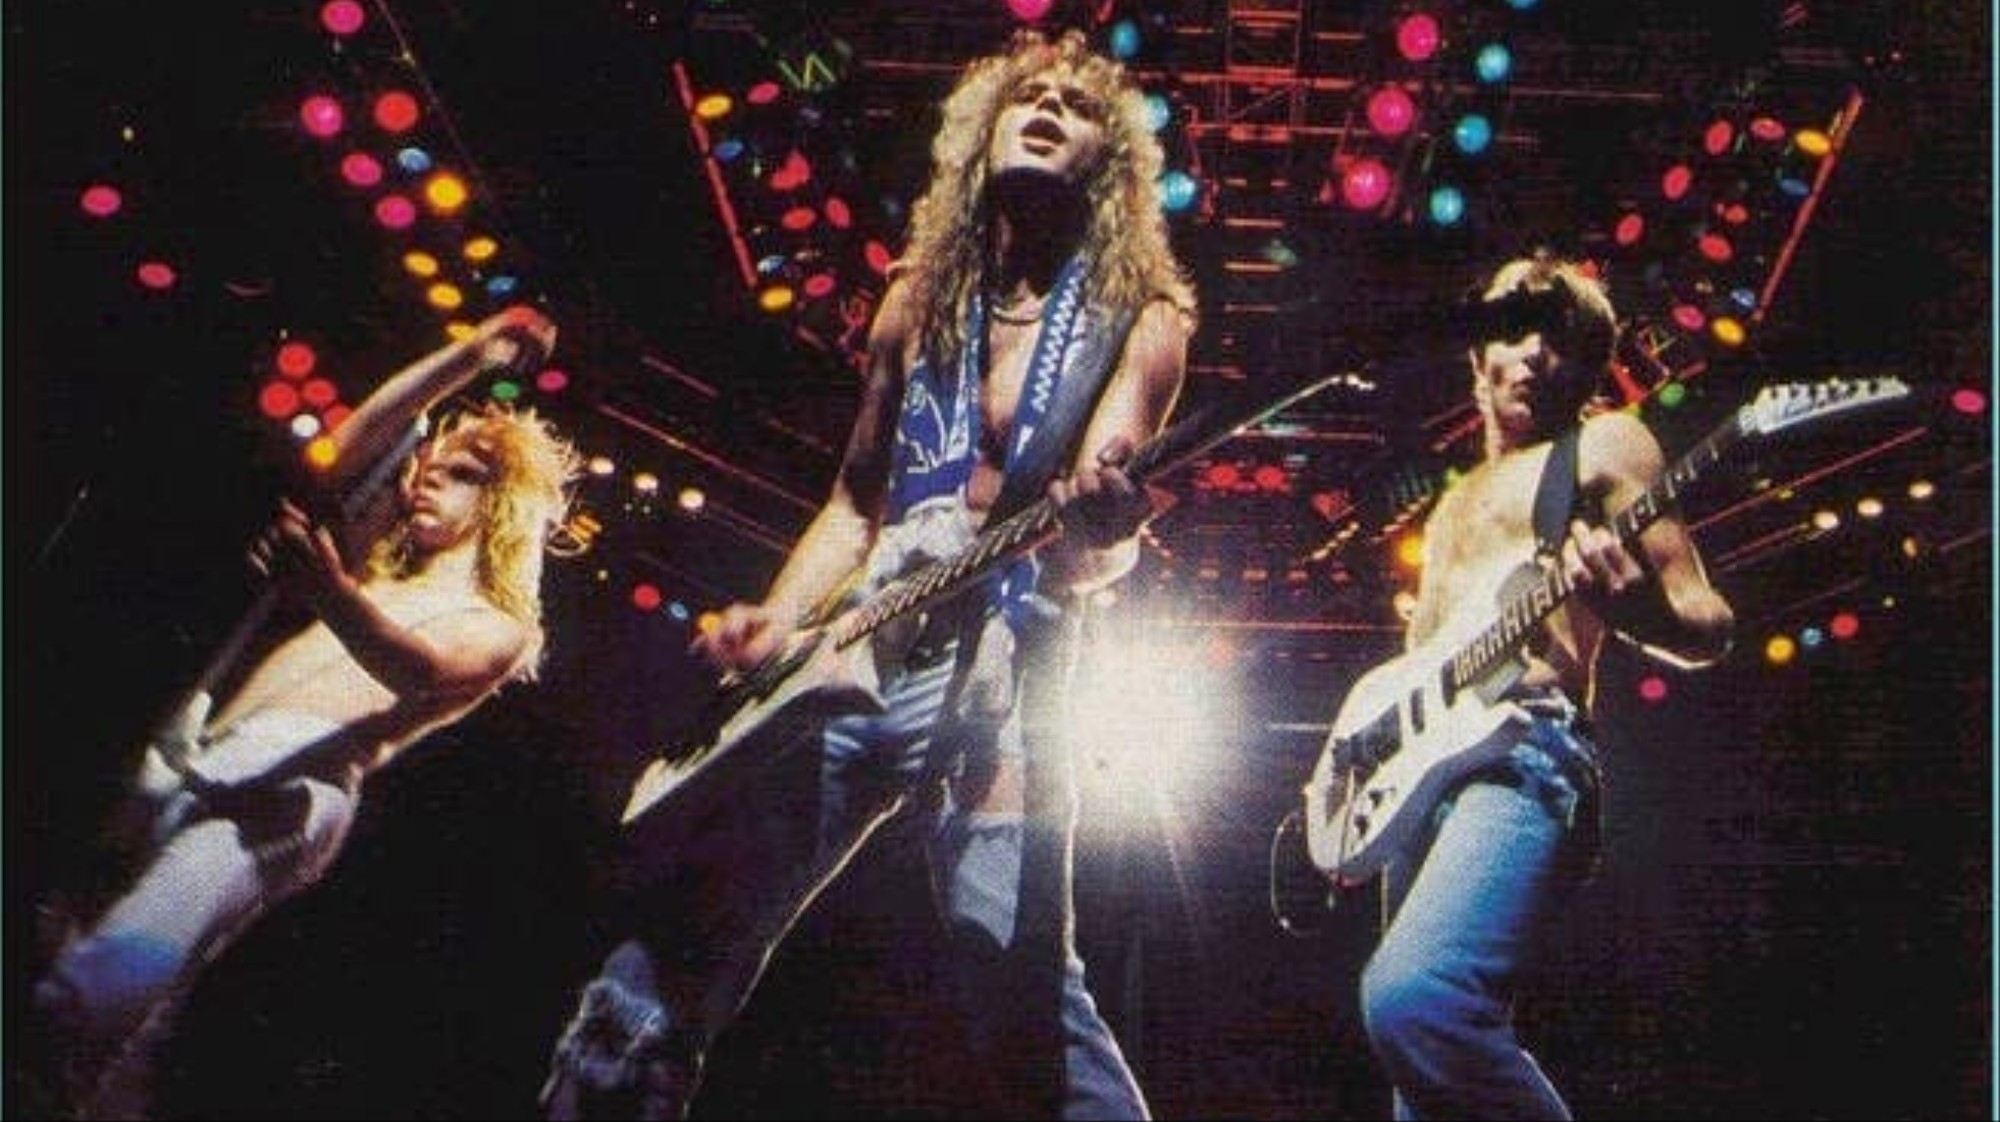 Def Leppard's 'Hysteria' Has Rocked for 30 Years but You